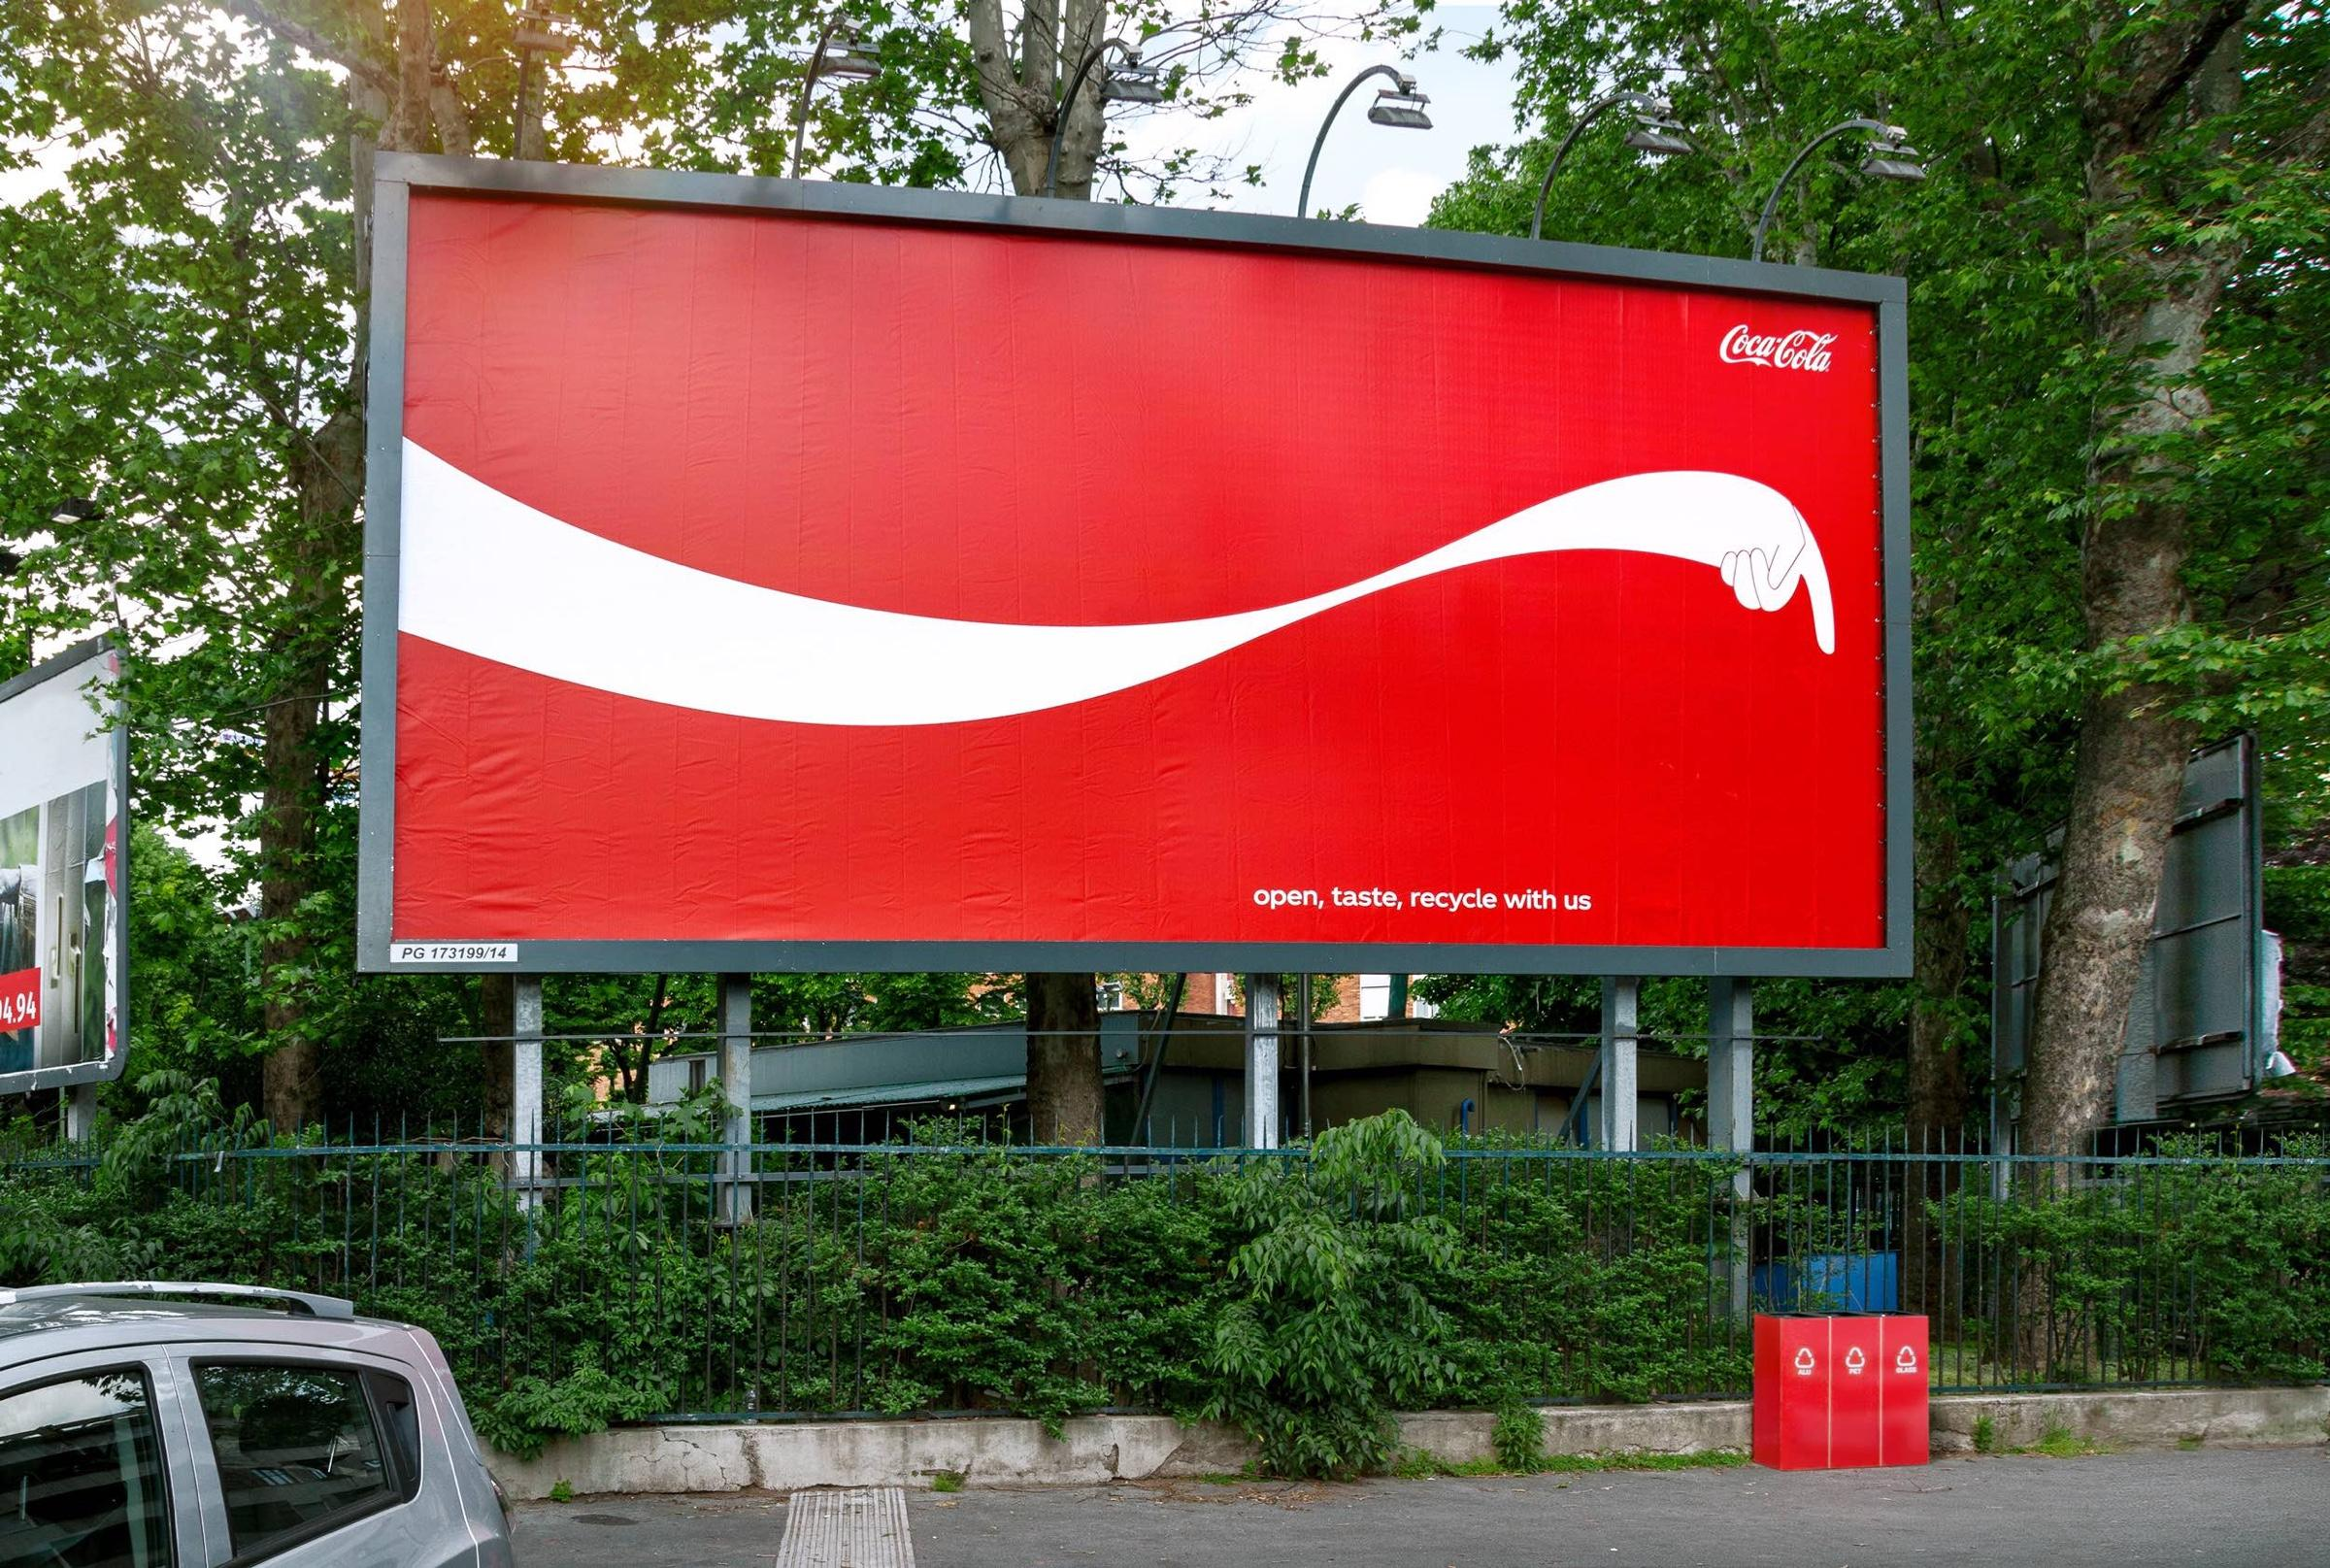 Coca-Cola: A World Without Waste